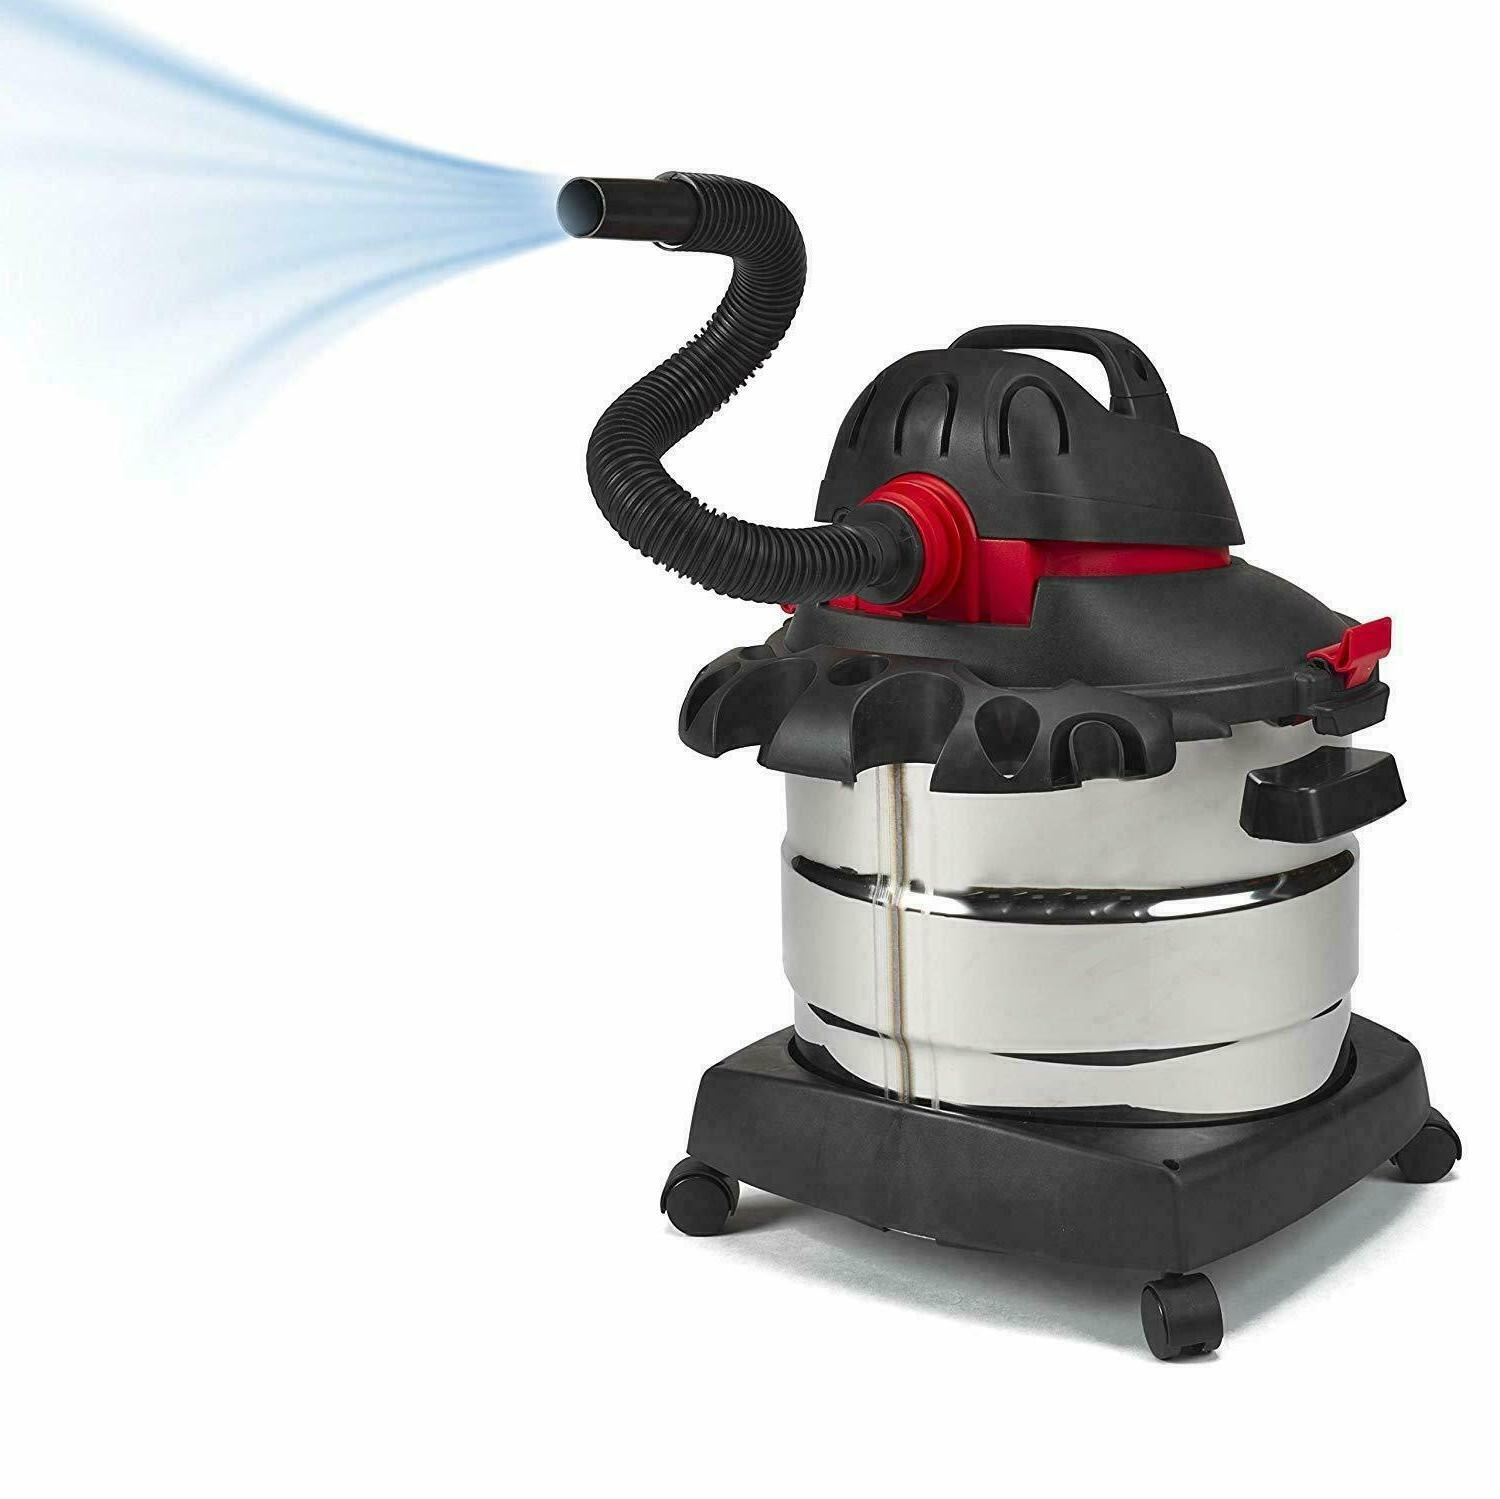 NEW Dry Shop Vac Cleaner